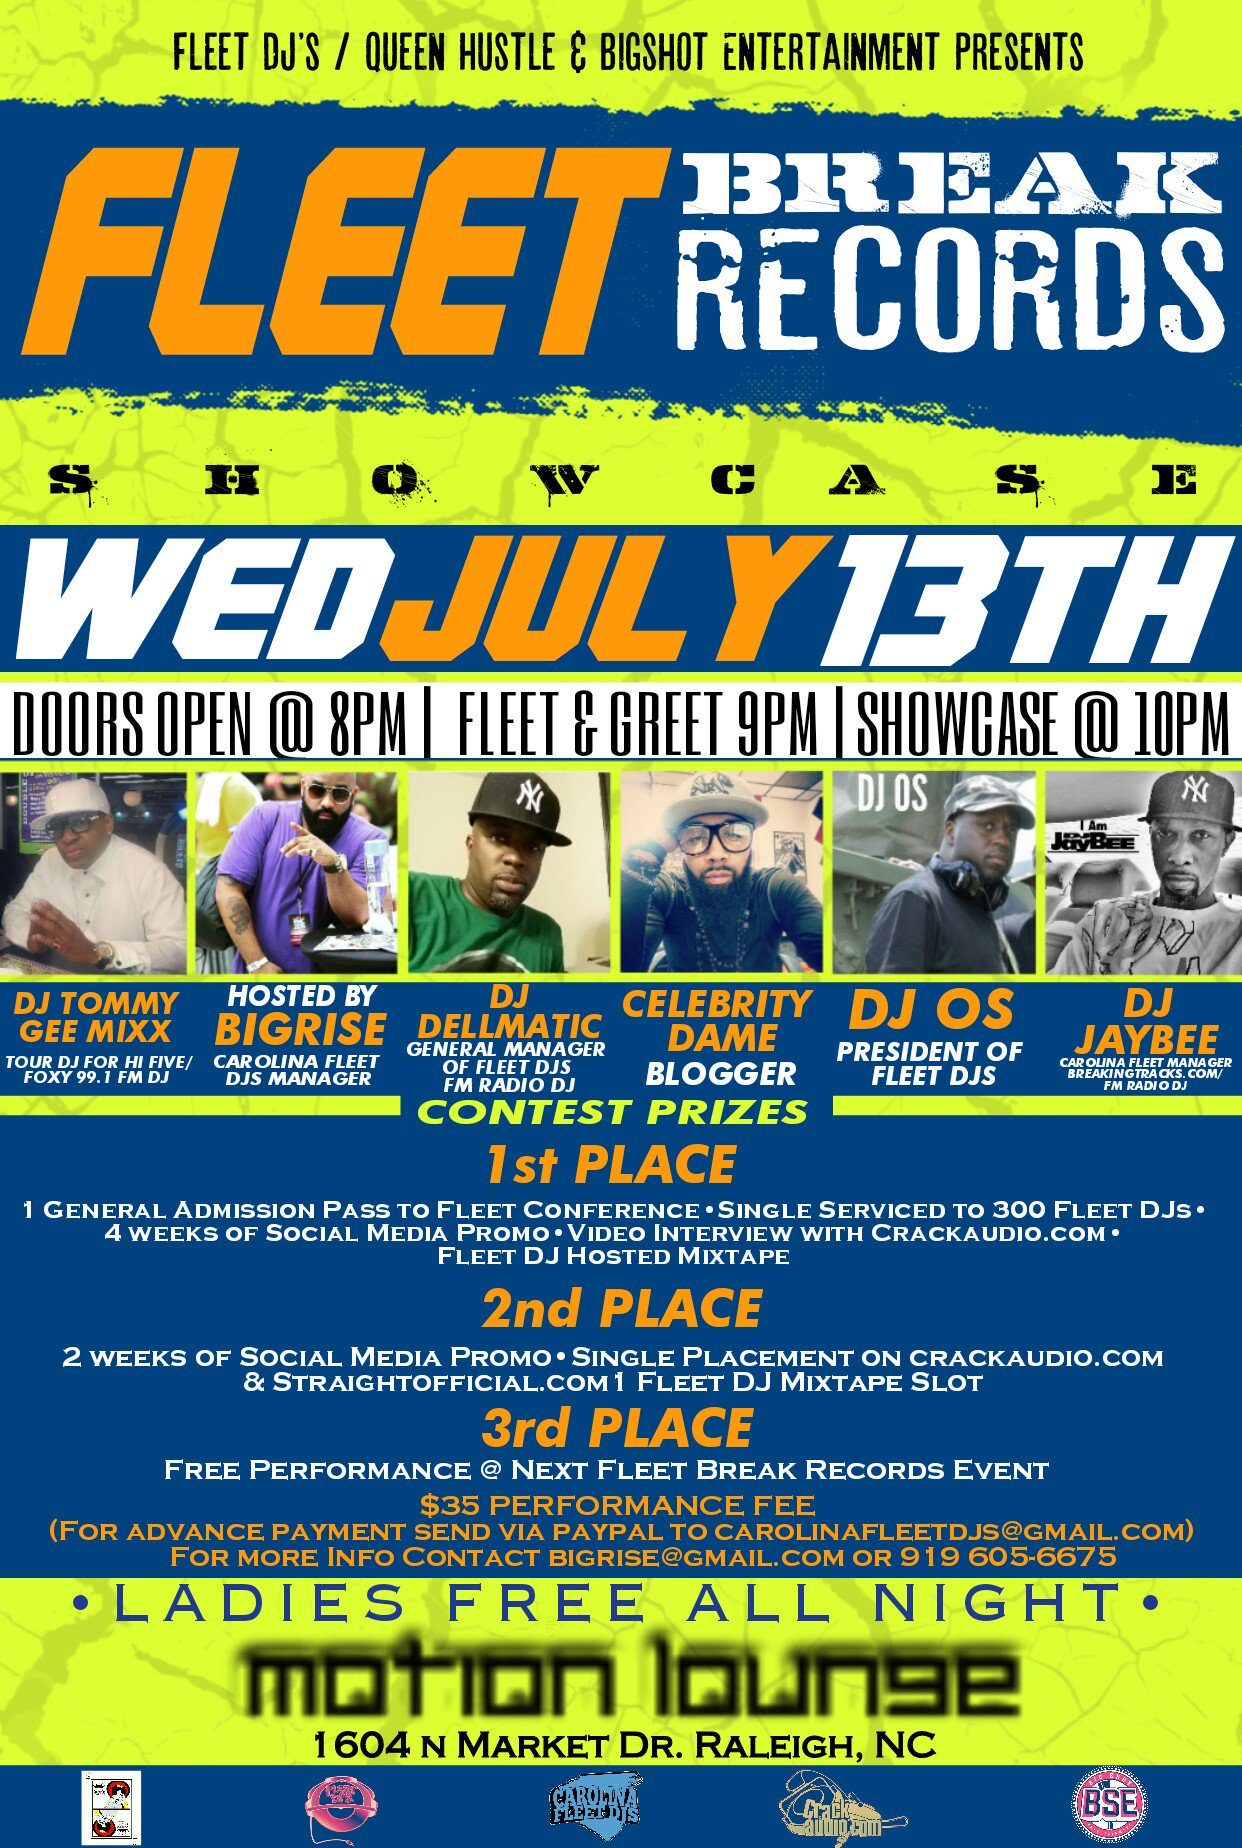 FLEET BREAK RECORDS SHOWCASE, BRING 5 PEOPLE TO WAVE PERFORMANCE FEE @Bigrise @DJDELLMATIC @DJOS100 @TommyGeeMixx https://t.co/qTBlyhthQ5